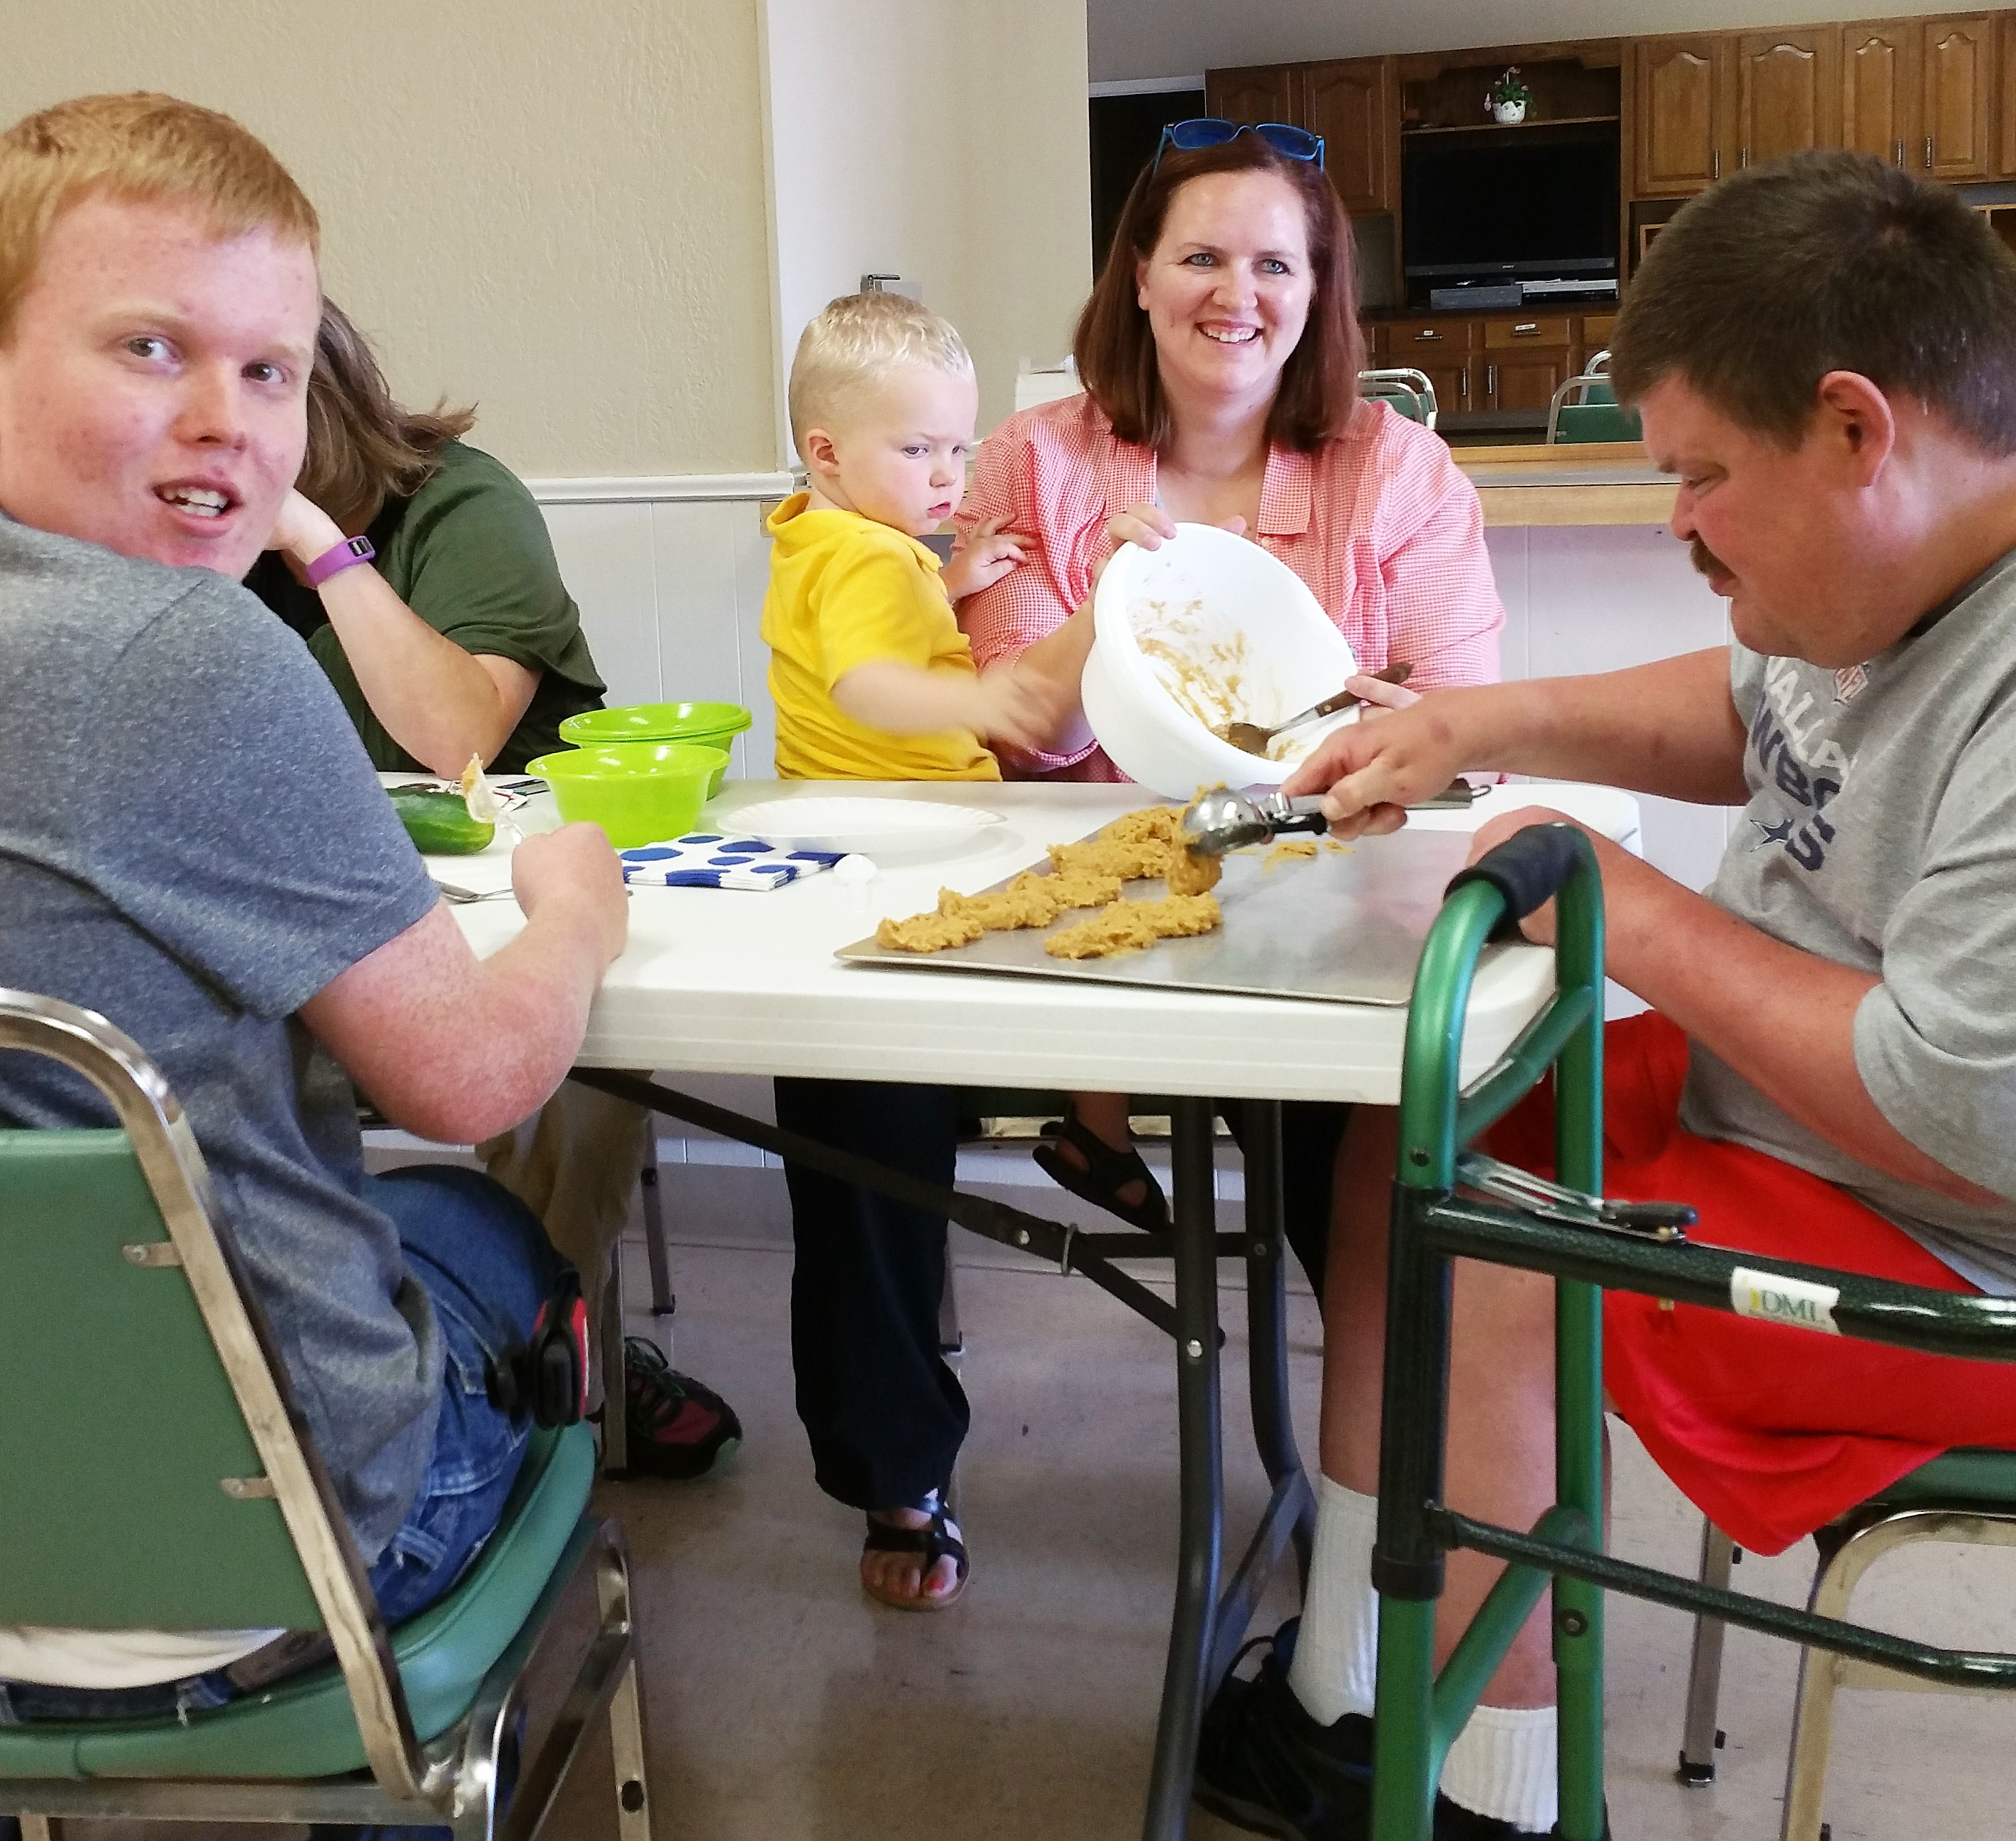 CCDDR helps people with development disabilities